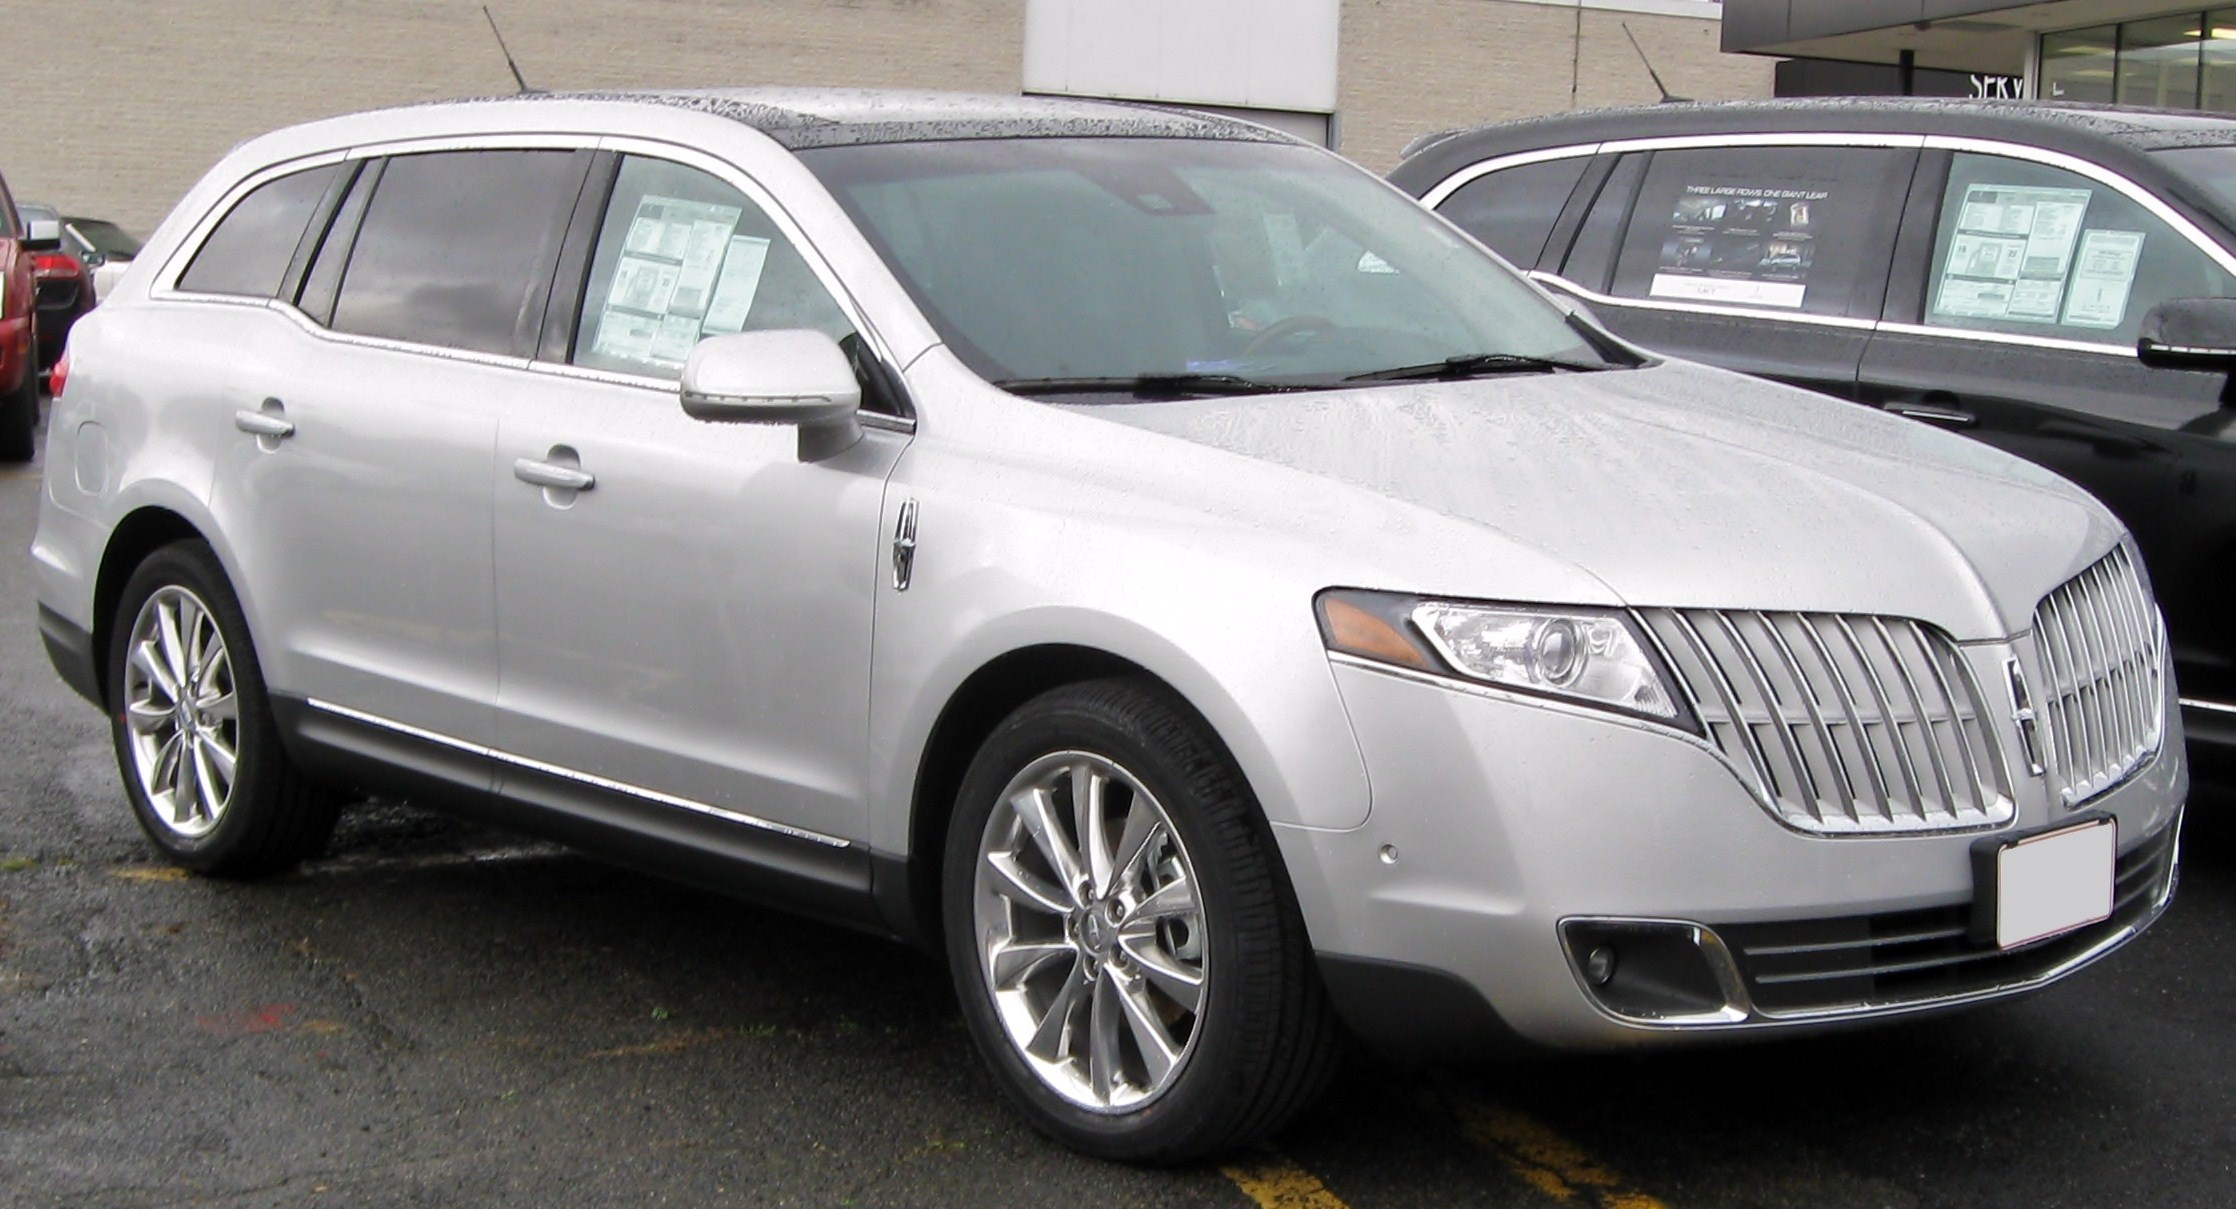 mkt mkx overview lincoln features international specs price intl